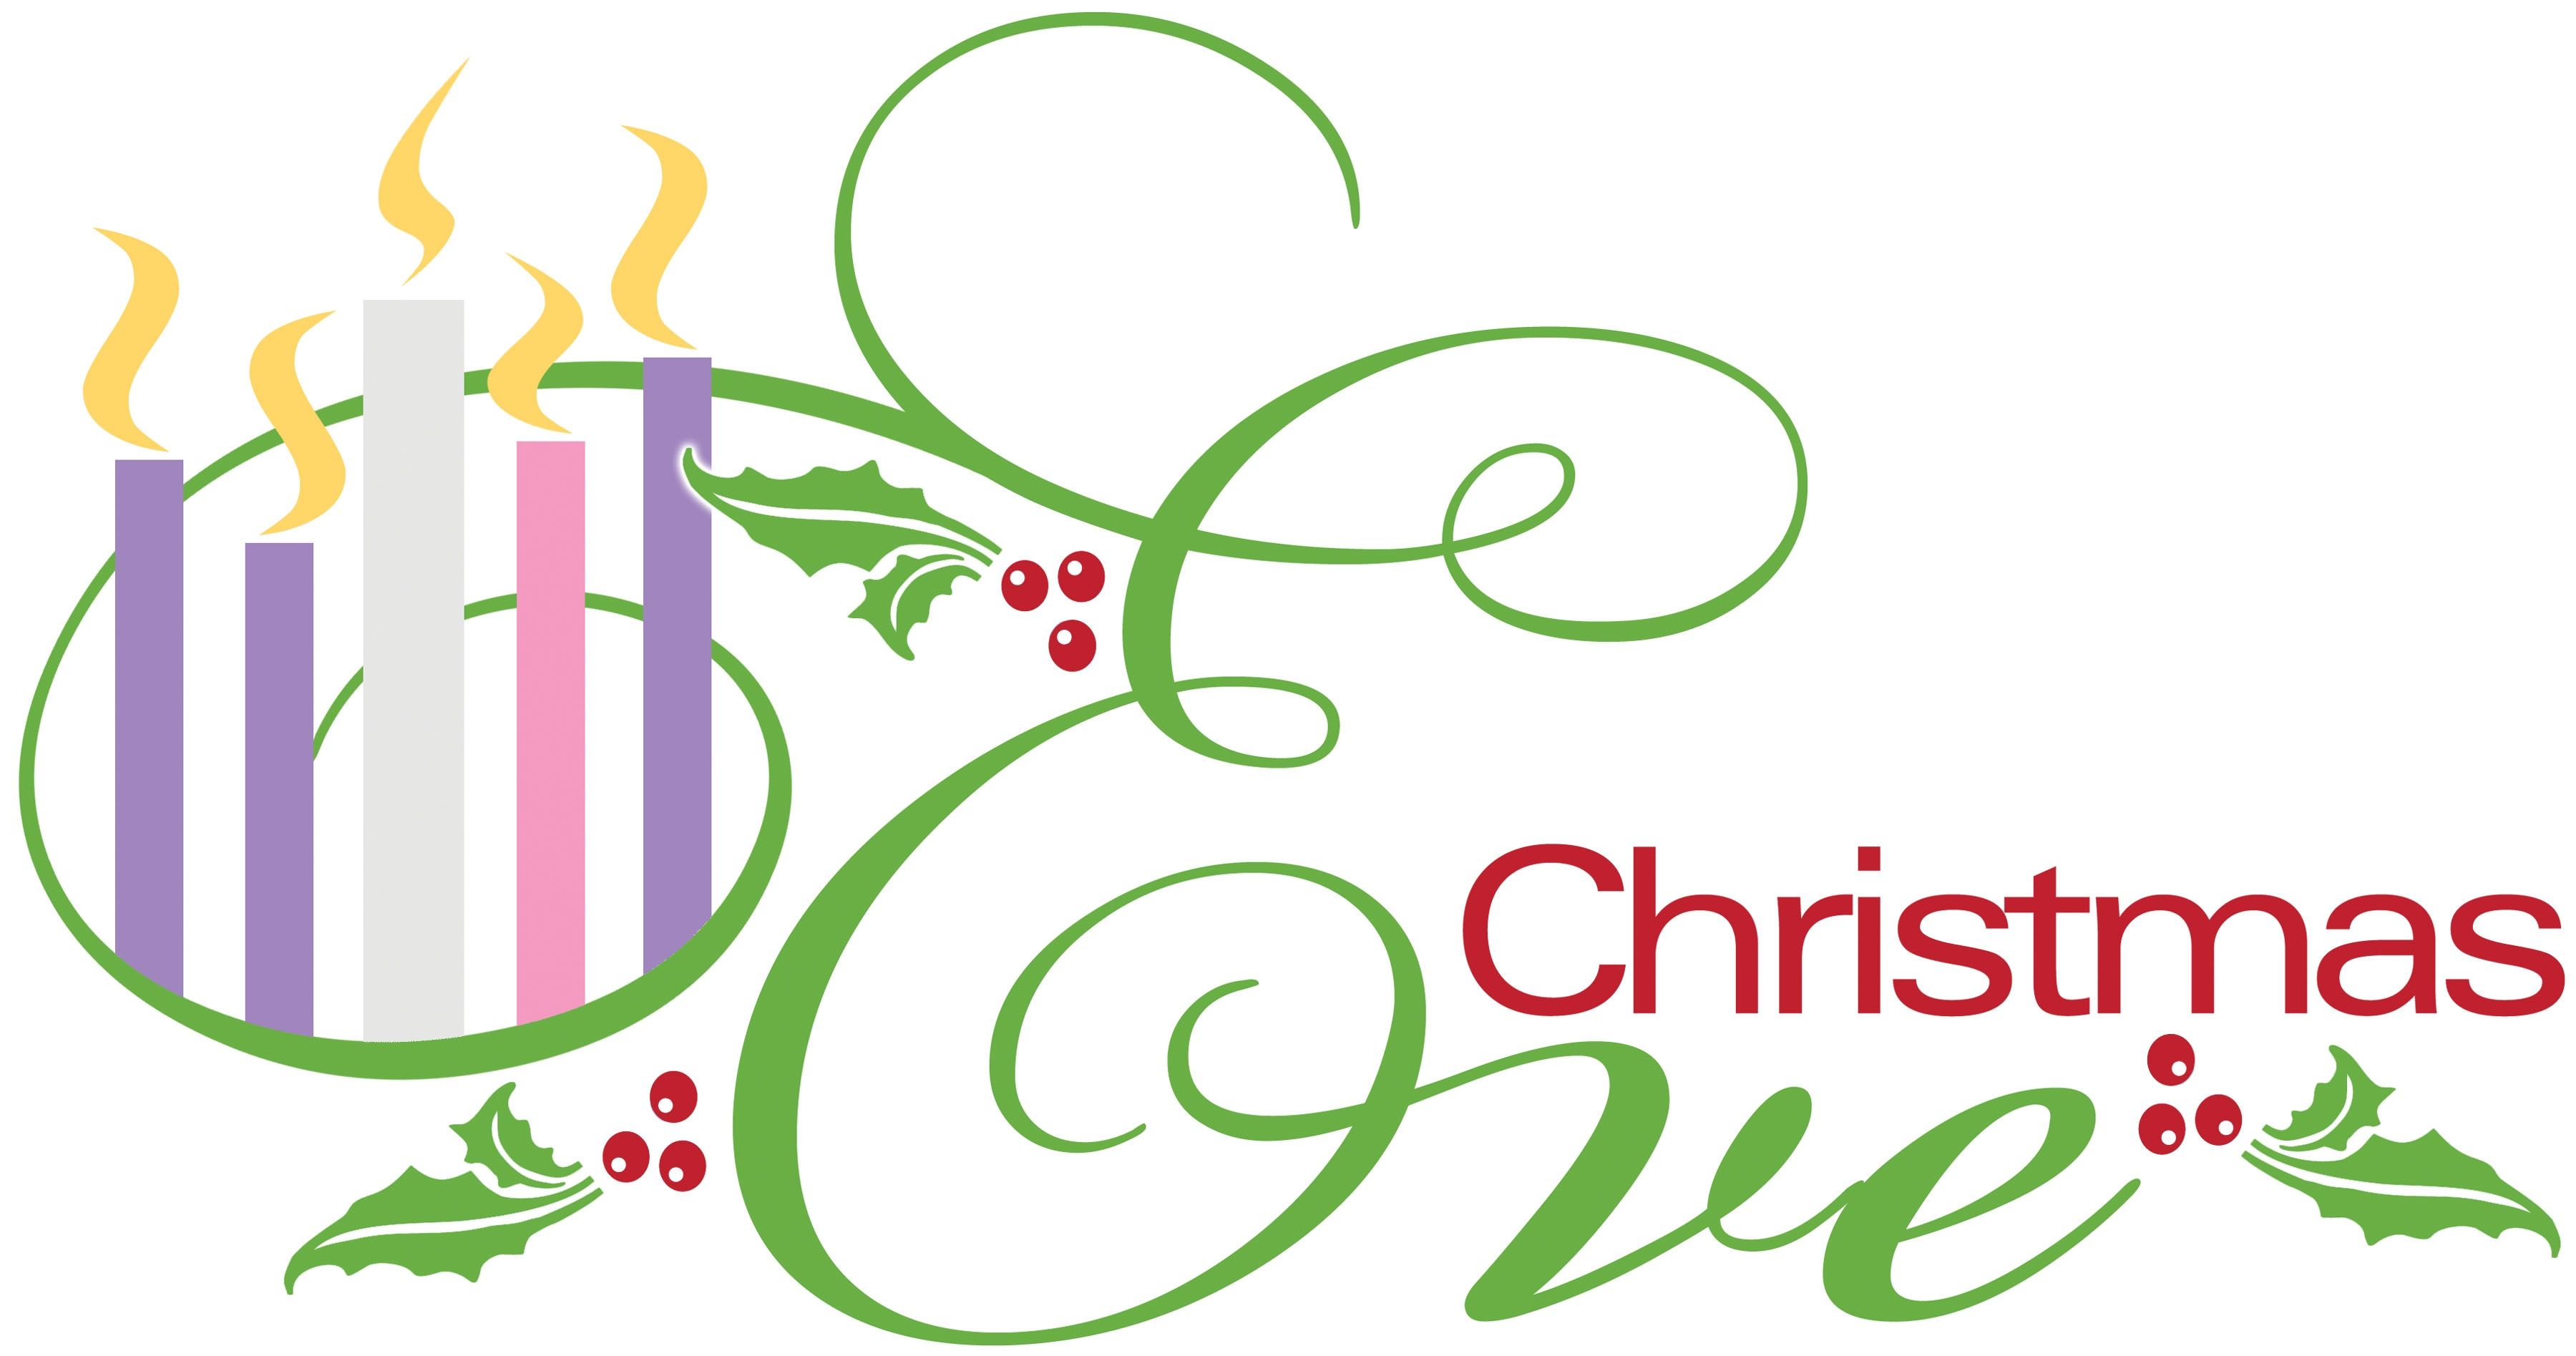 Inspirational christmas clipart image free download Christian christmas clipart Inspirational Christmas Christian ... image free download